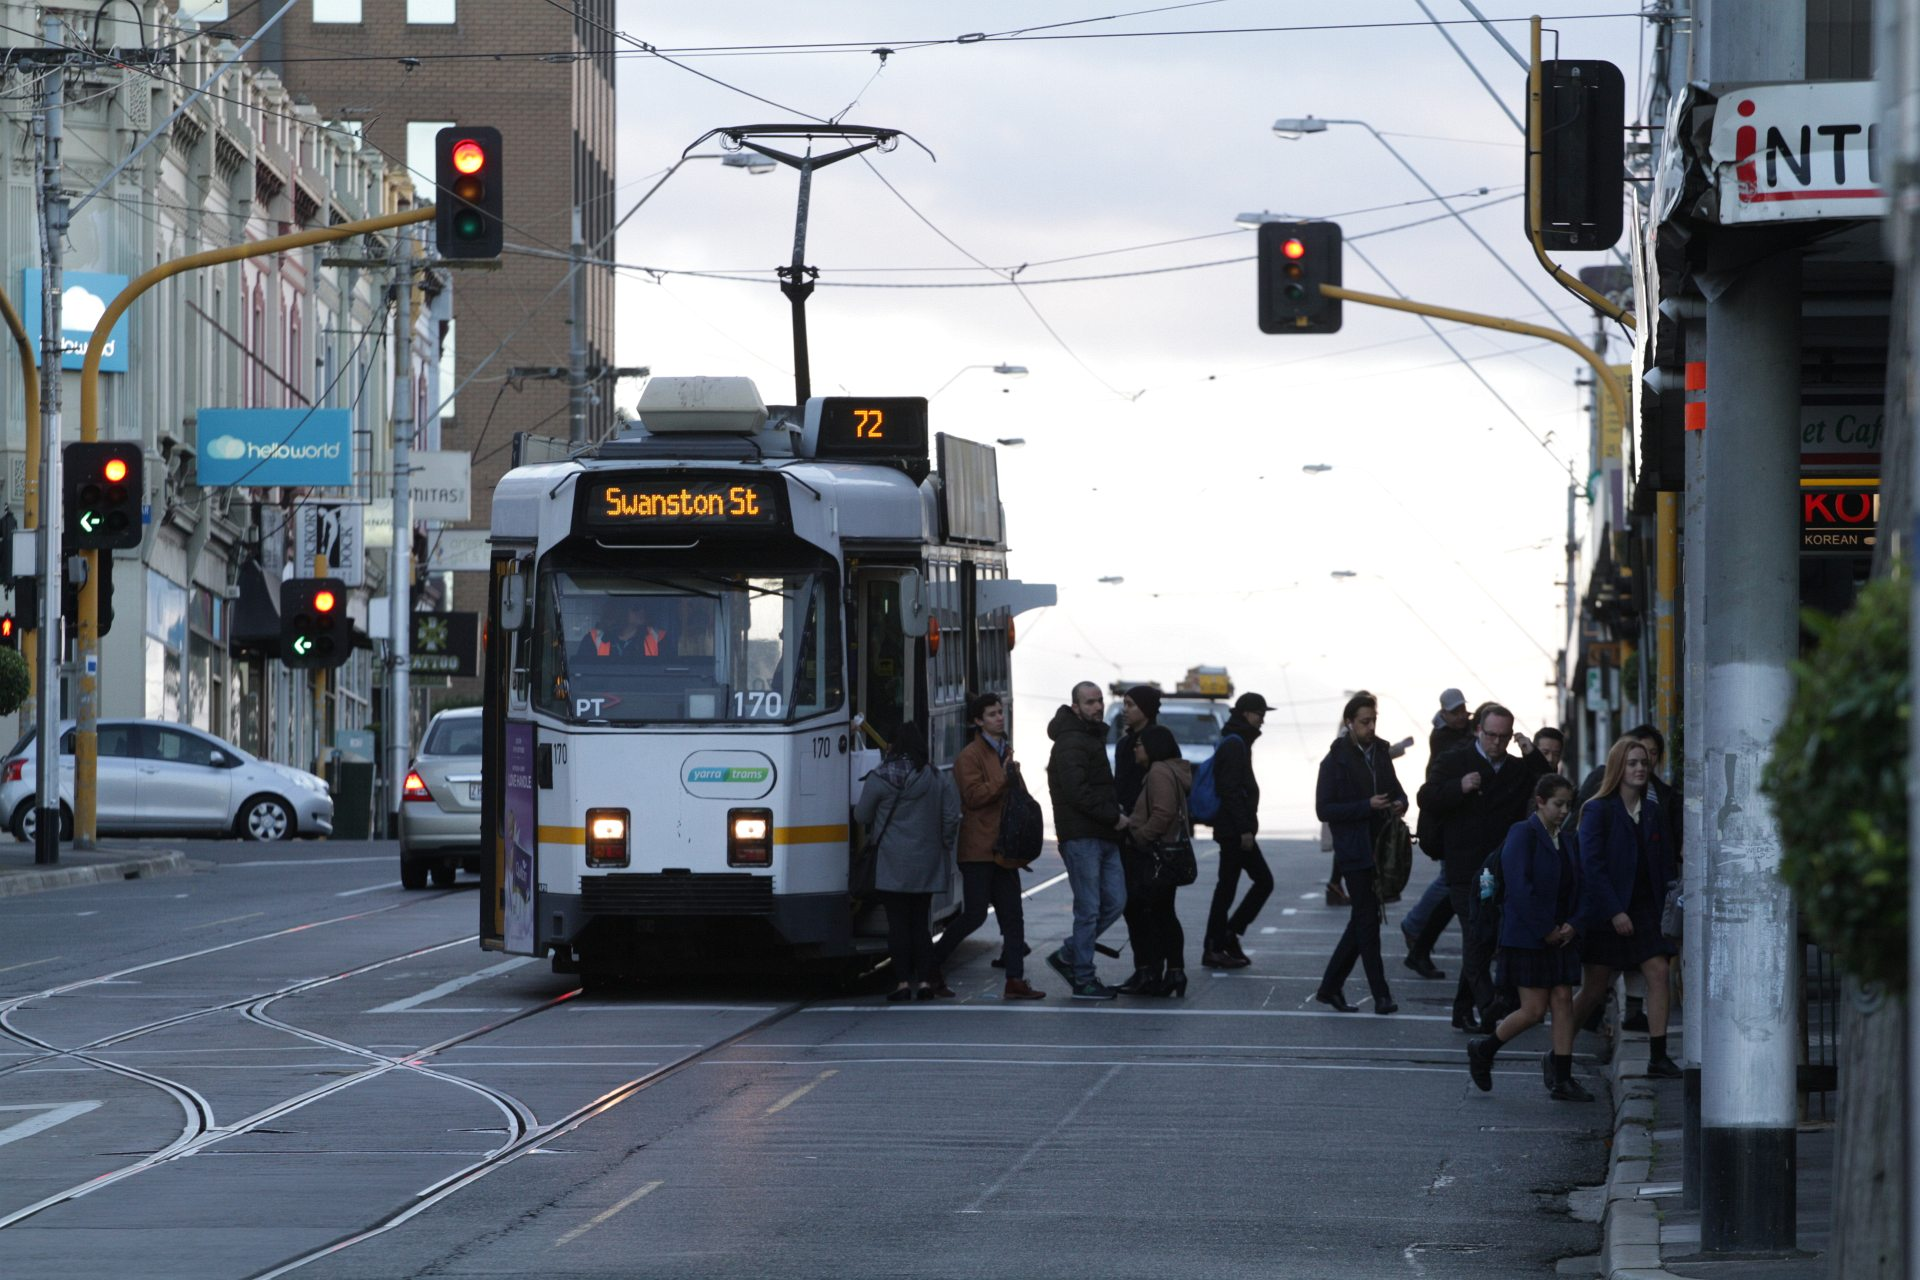 Melbourne tram with passengers disembarking